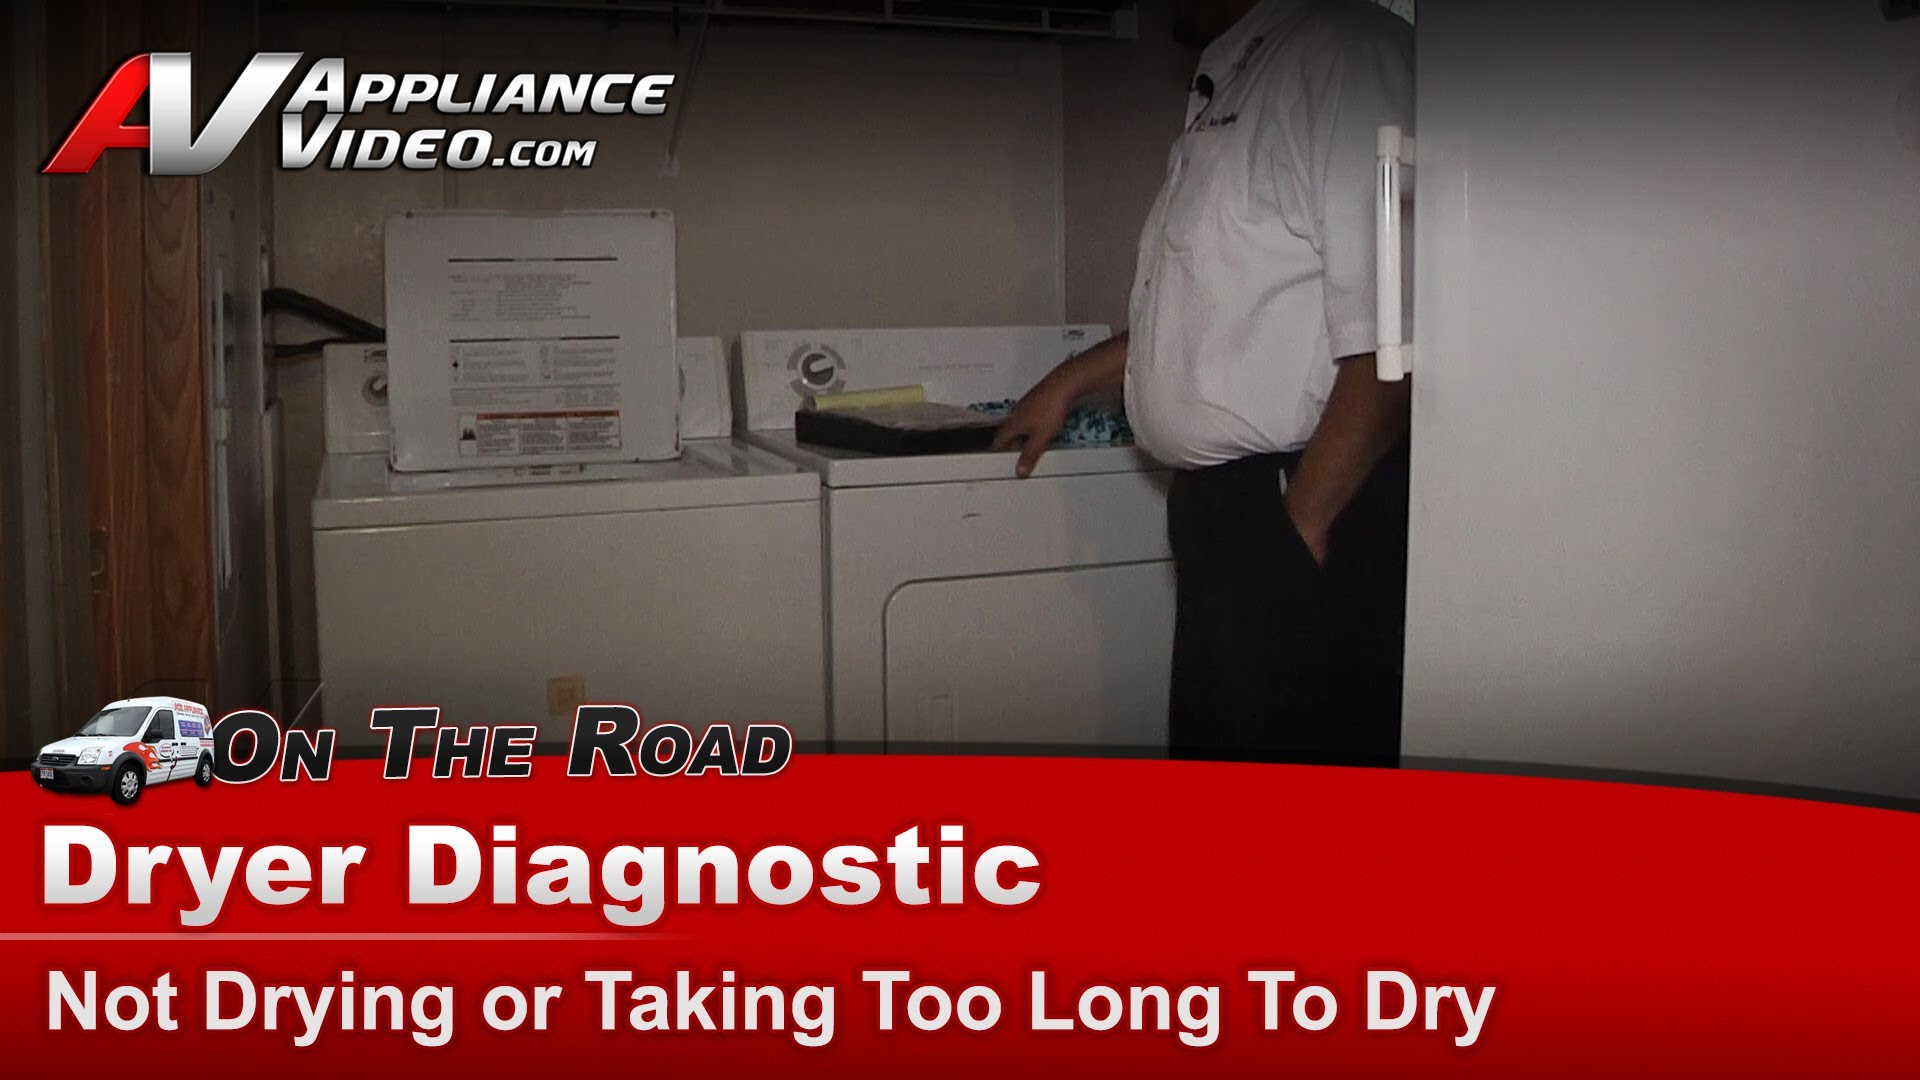 Estate Eed4300tq0 Dryer Diagnostic And Repair Not Drying